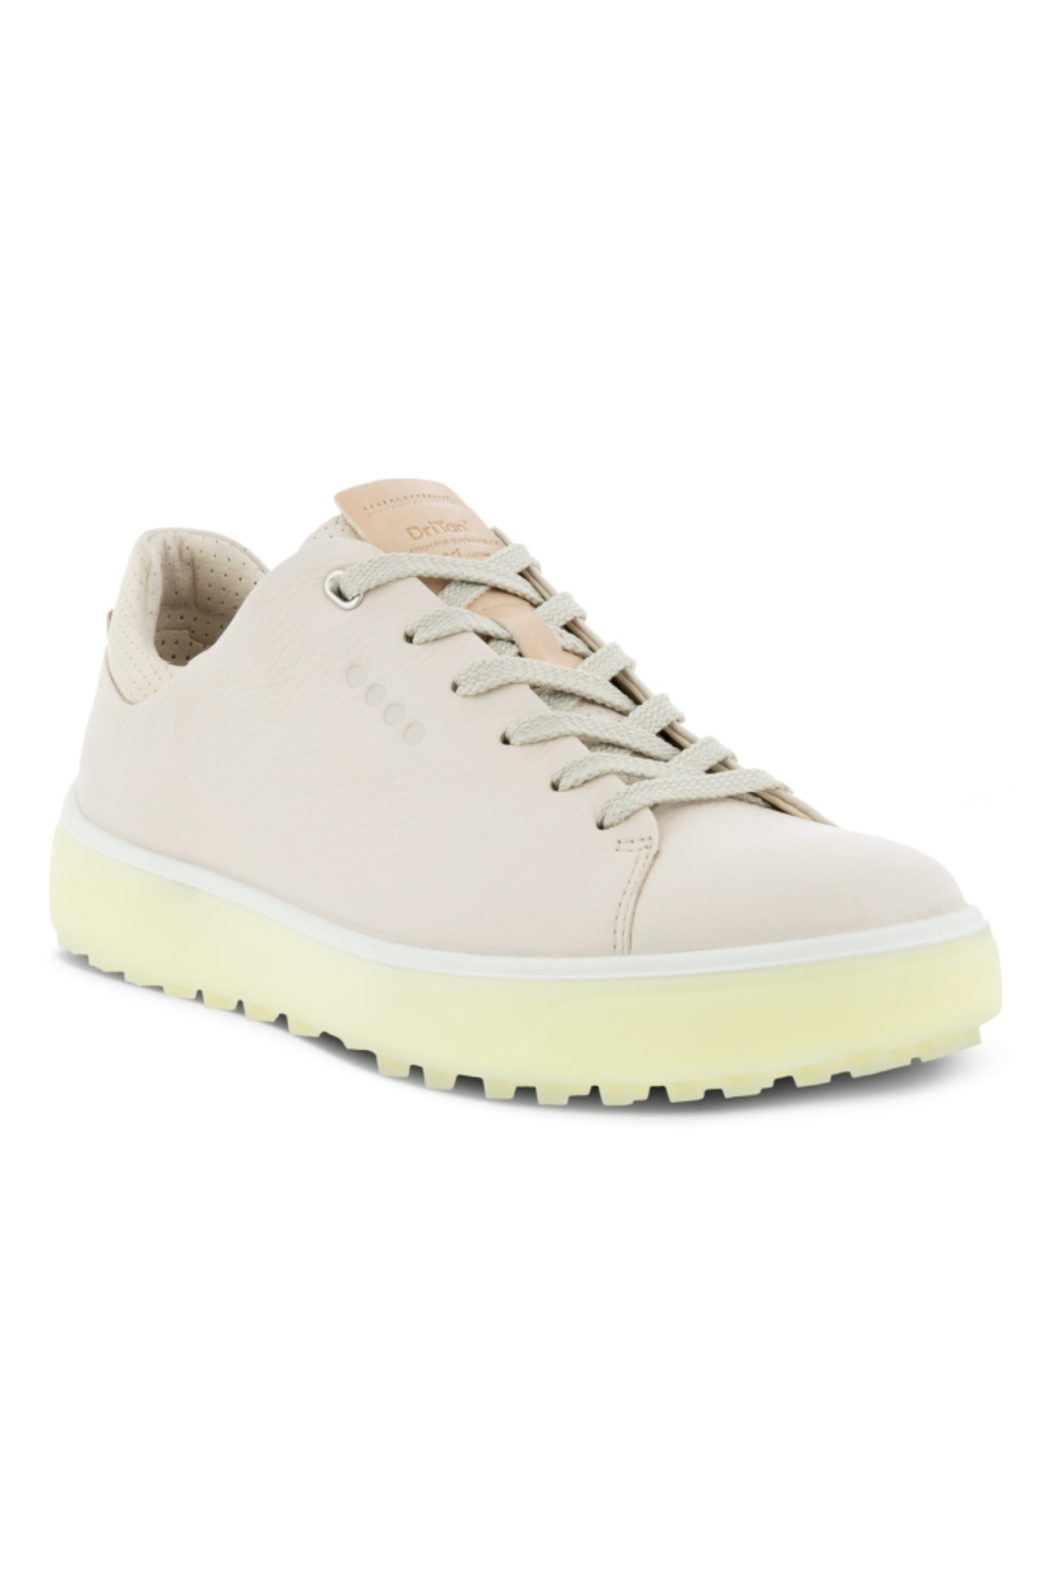 ECCO Ecco Women's Tray Golf Shoes - Front Cropped Image